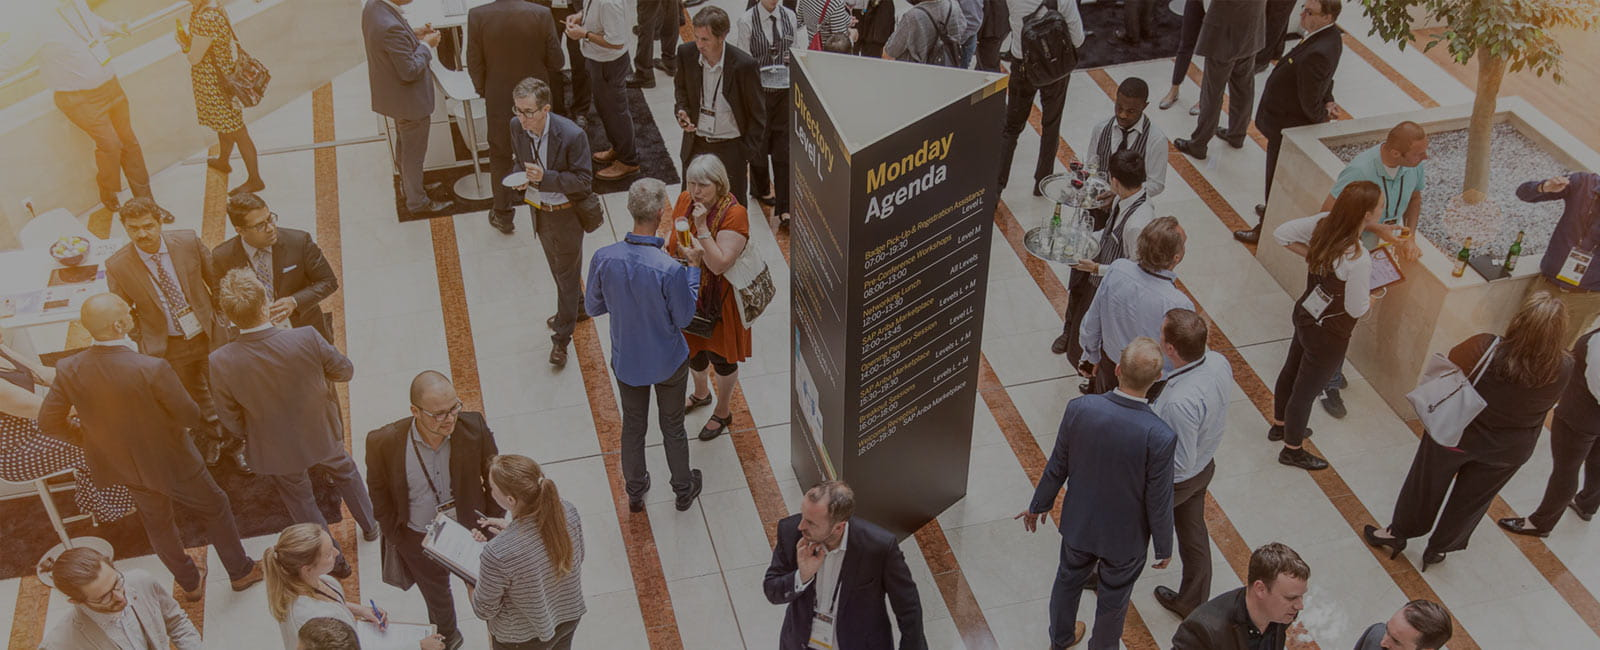 Networking is popular at SAP Ariba Live